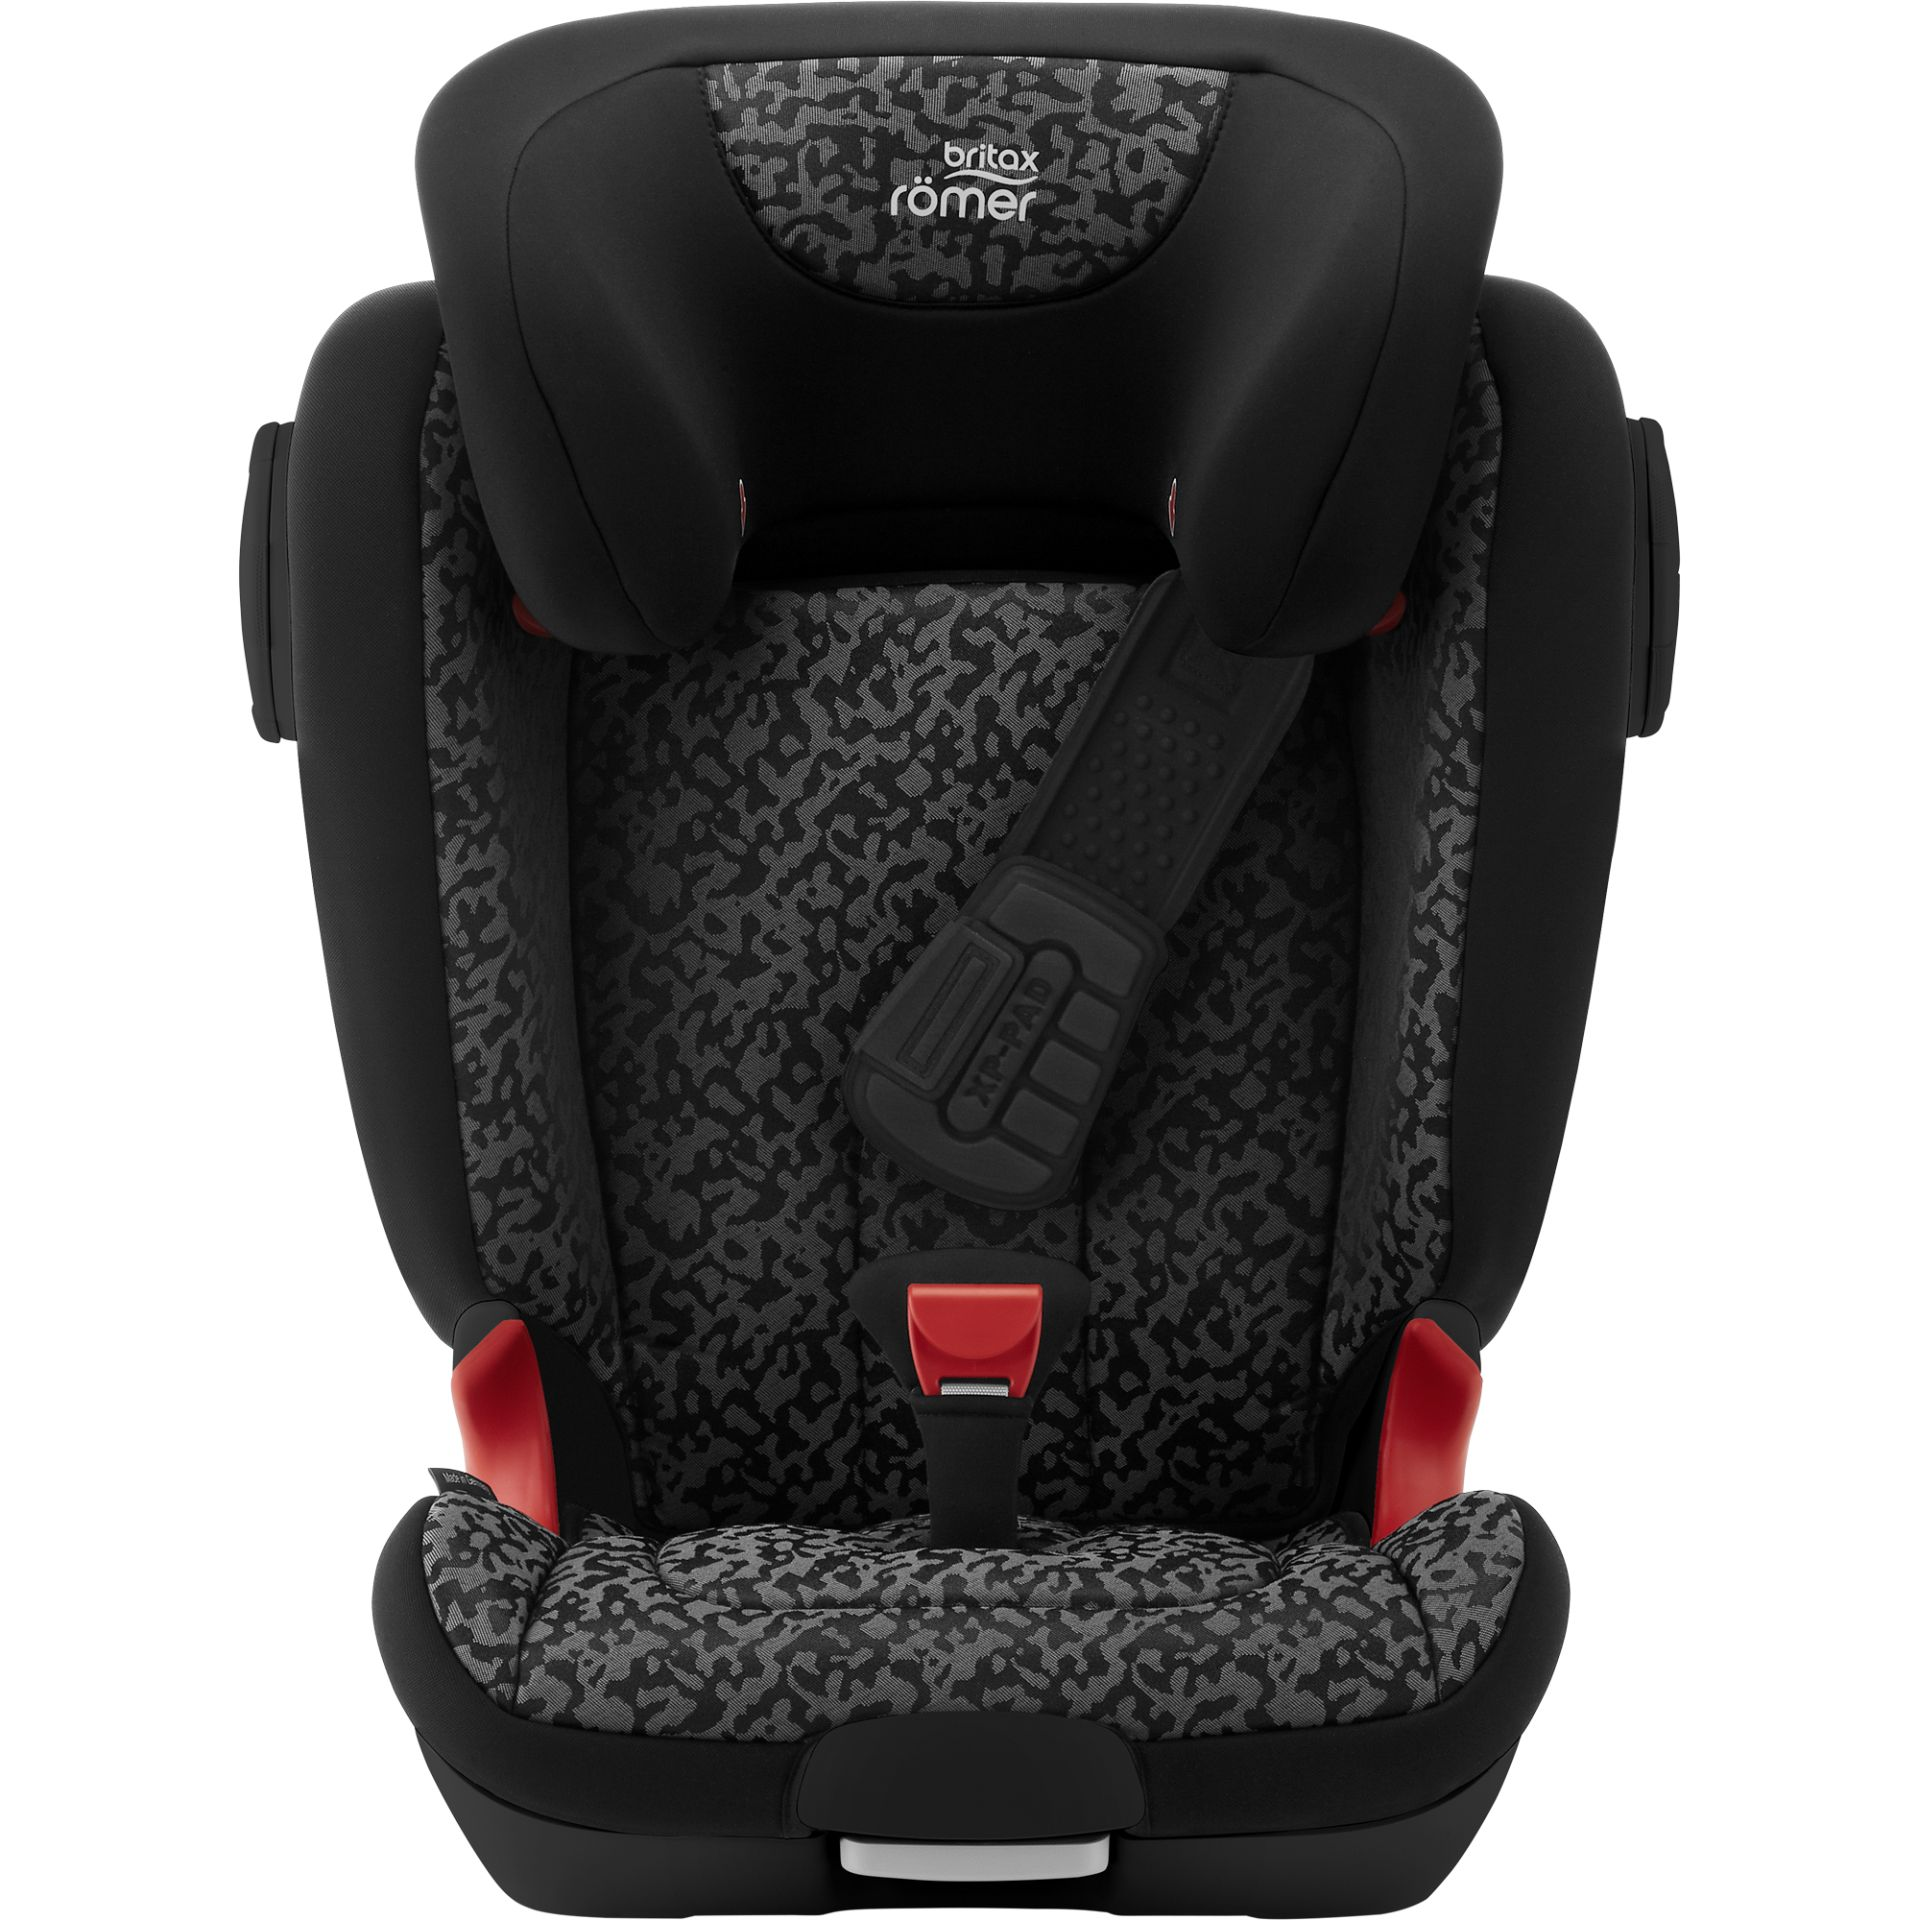 britax r mer child car seat kidfix ii xp sict black series 2018 mystic black buy at kidsroom. Black Bedroom Furniture Sets. Home Design Ideas